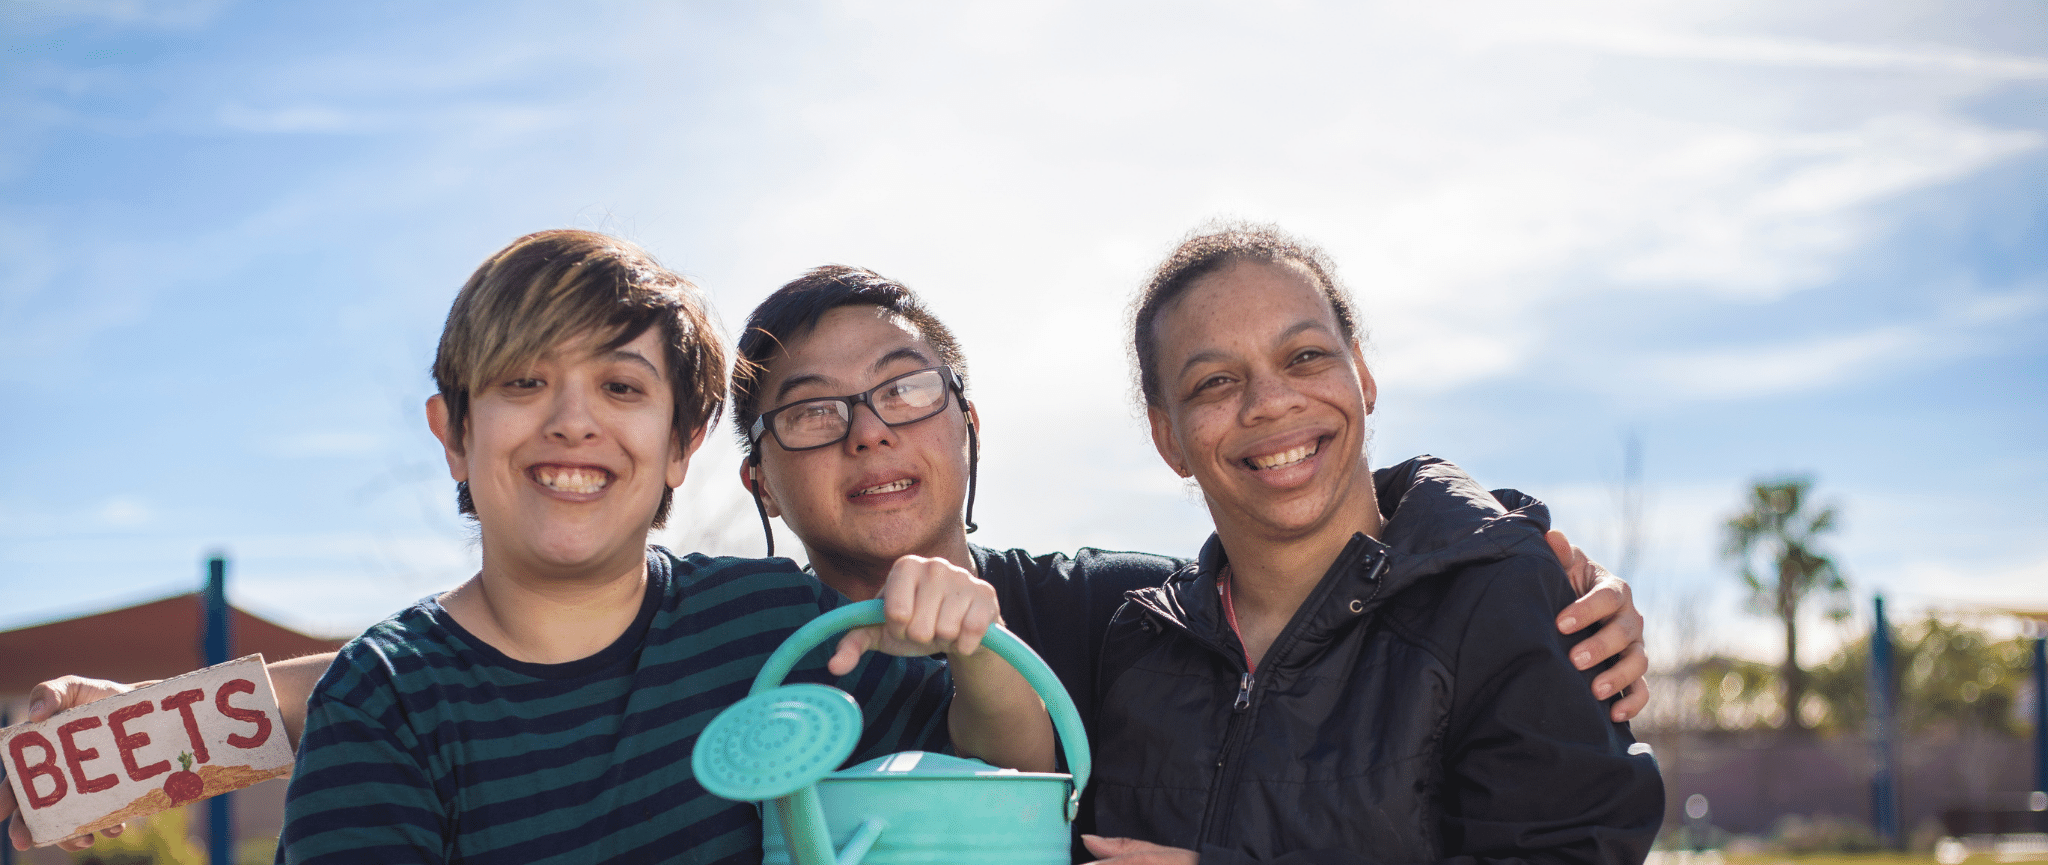 Three, young people from diverse backgrounds smiling